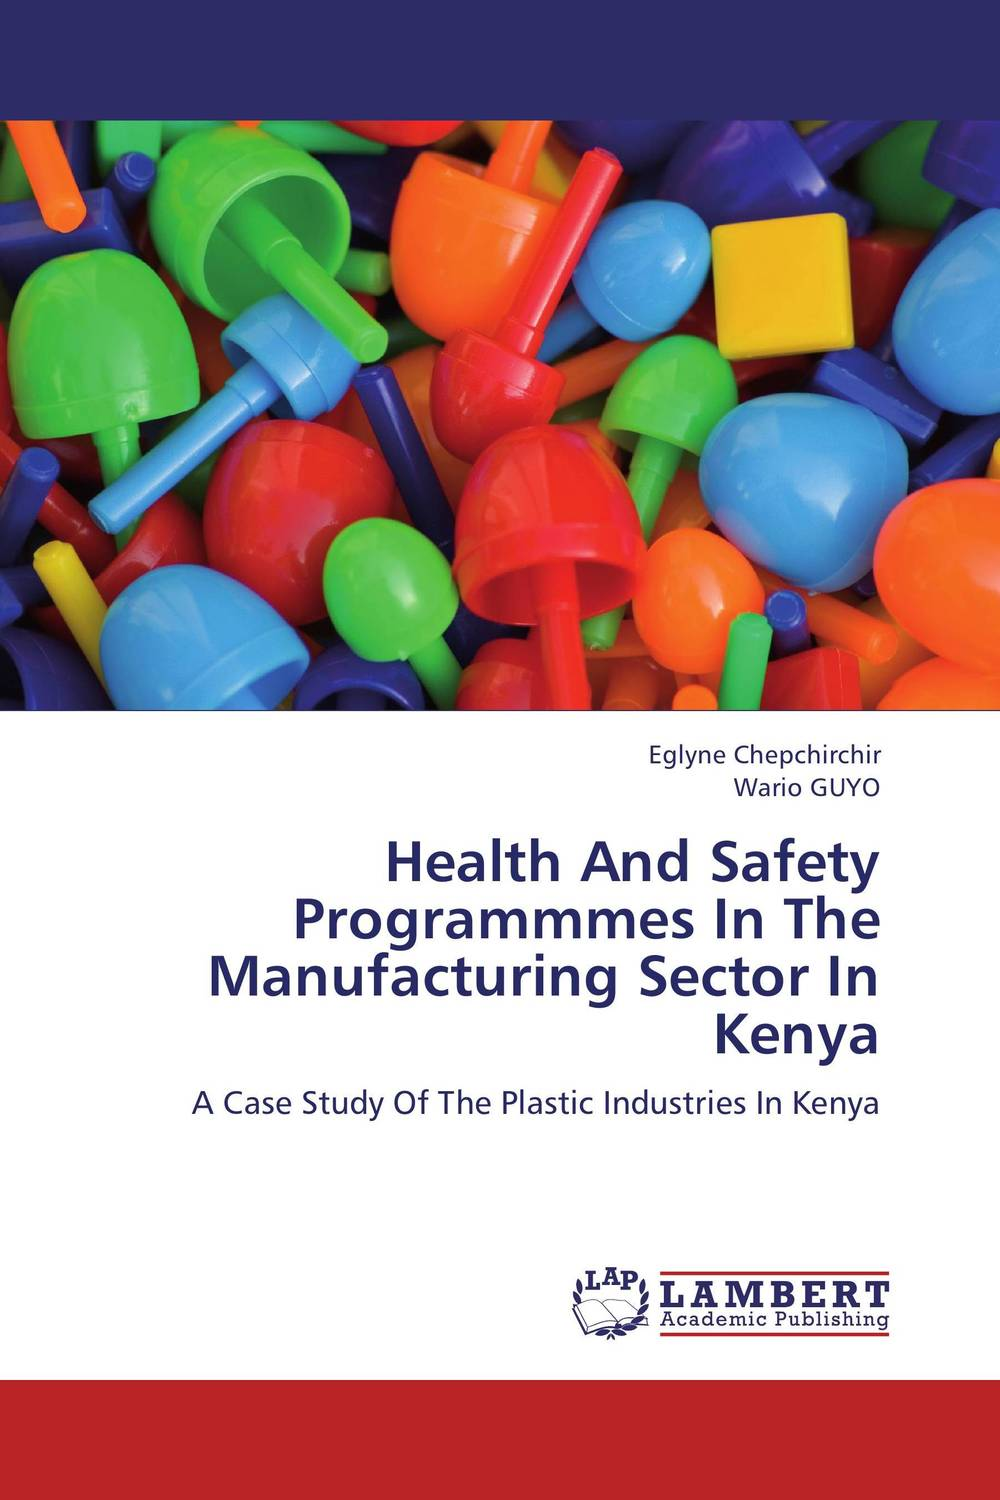 Health And Safety Programmmes In The Manufacturing Sector In Kenya prostate health devices is prostate removal prostatitis mainly for the prostate health and prostatitis health capsule